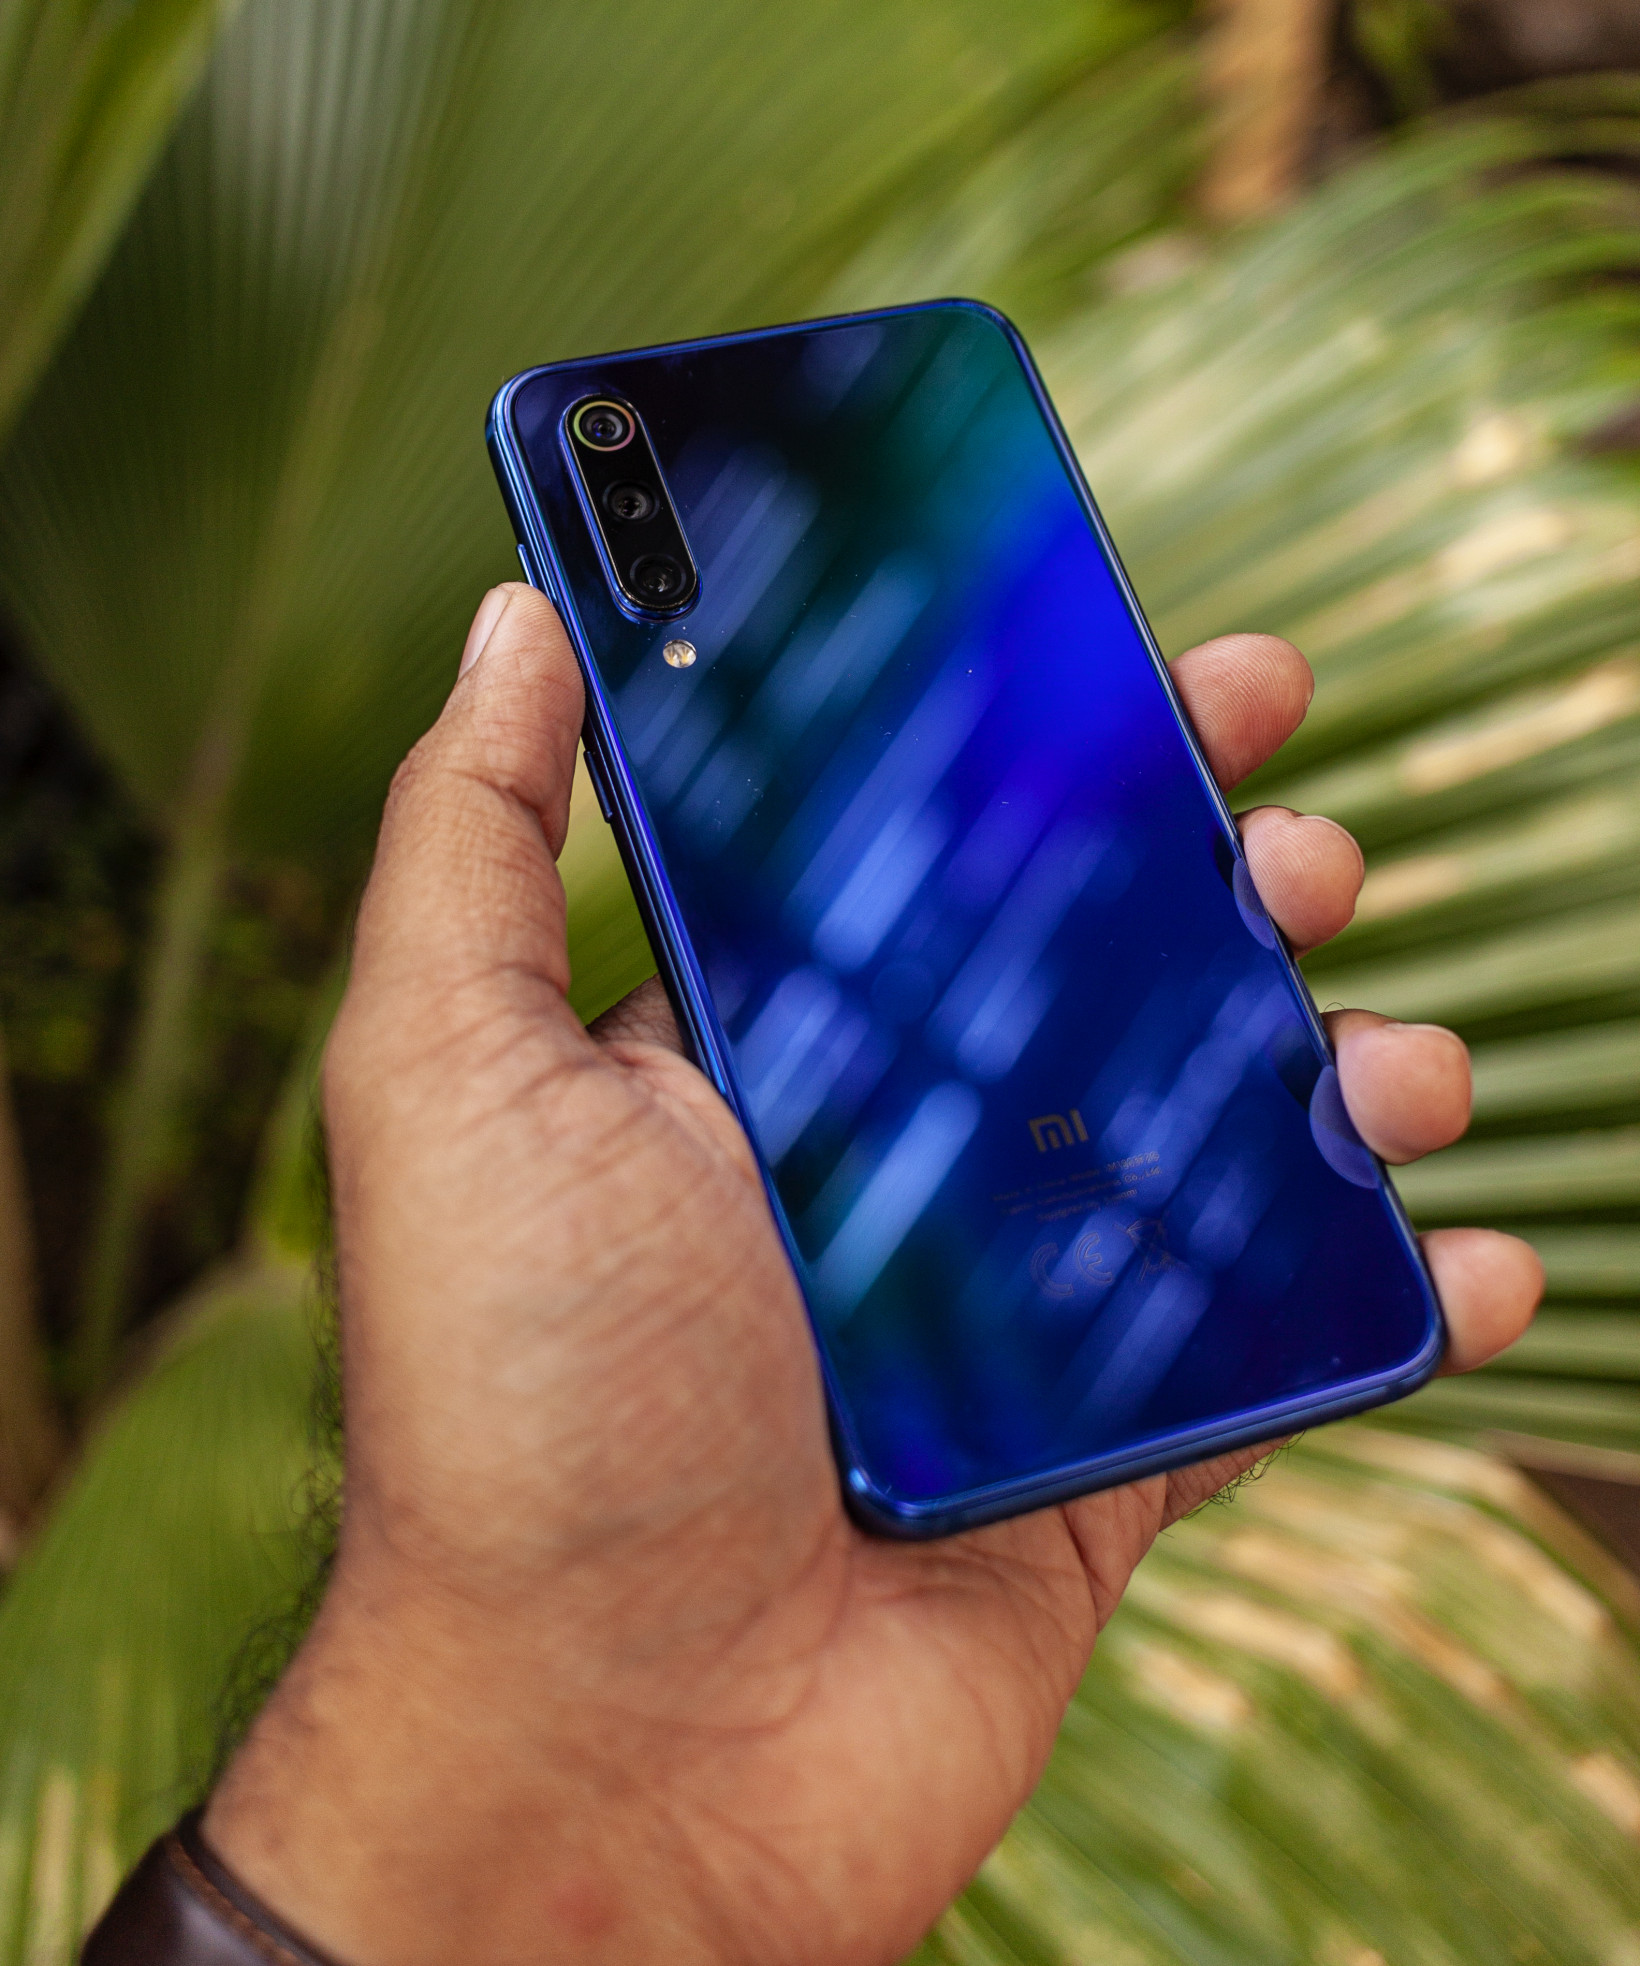 The glass back on the Xiaomi Mi 9 SE looks great when the light hits it at different angles